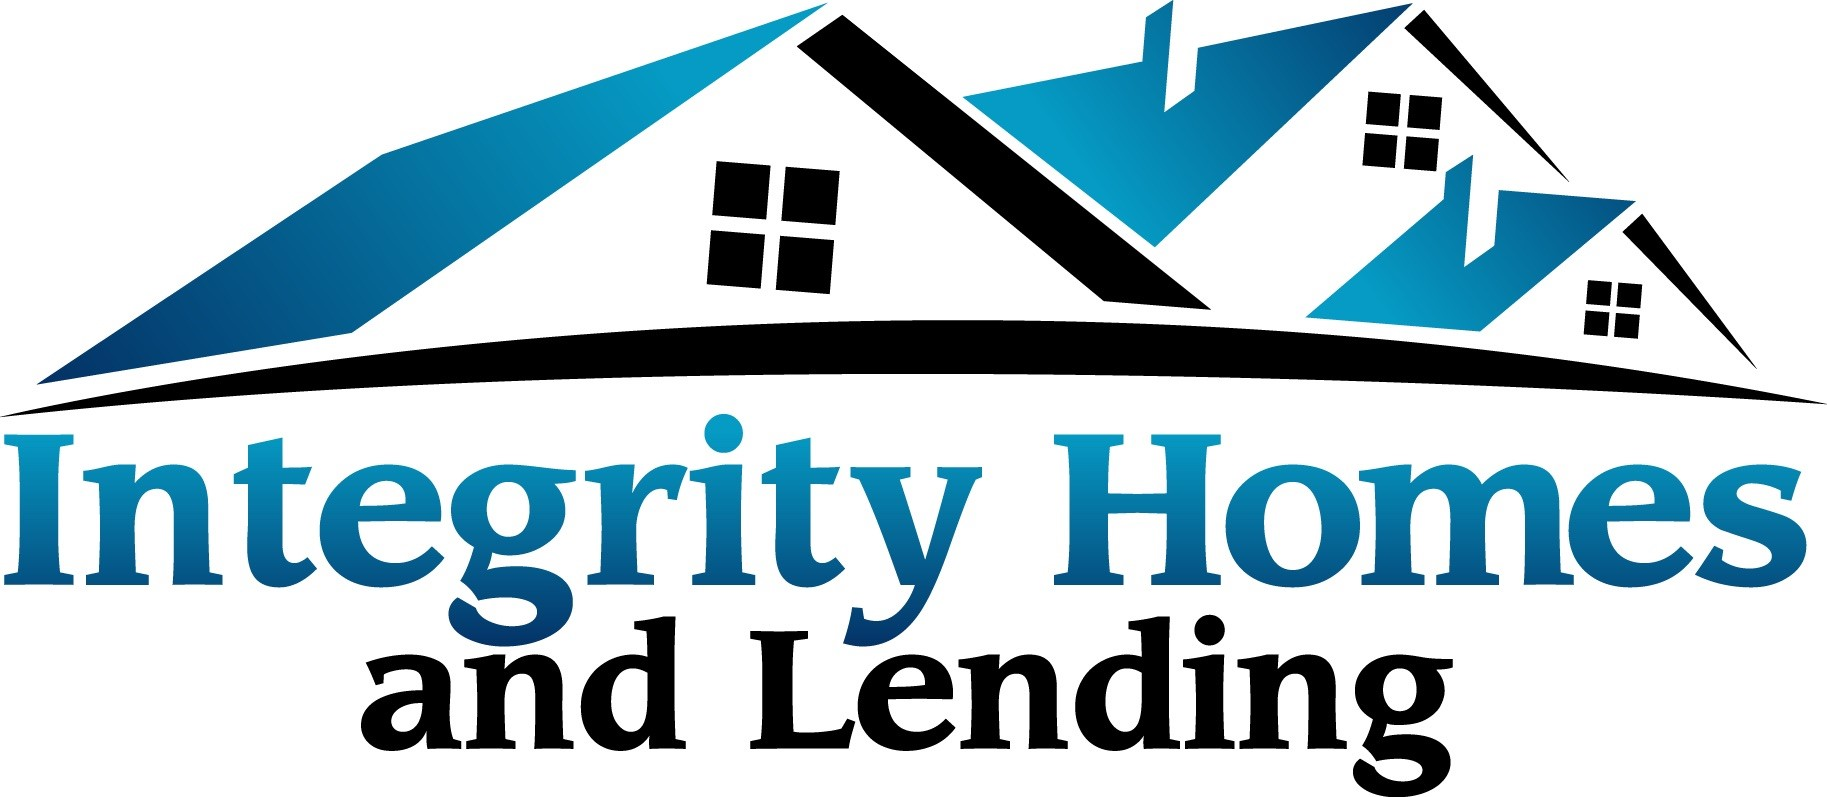 Integrity Homes and Lending, LLC